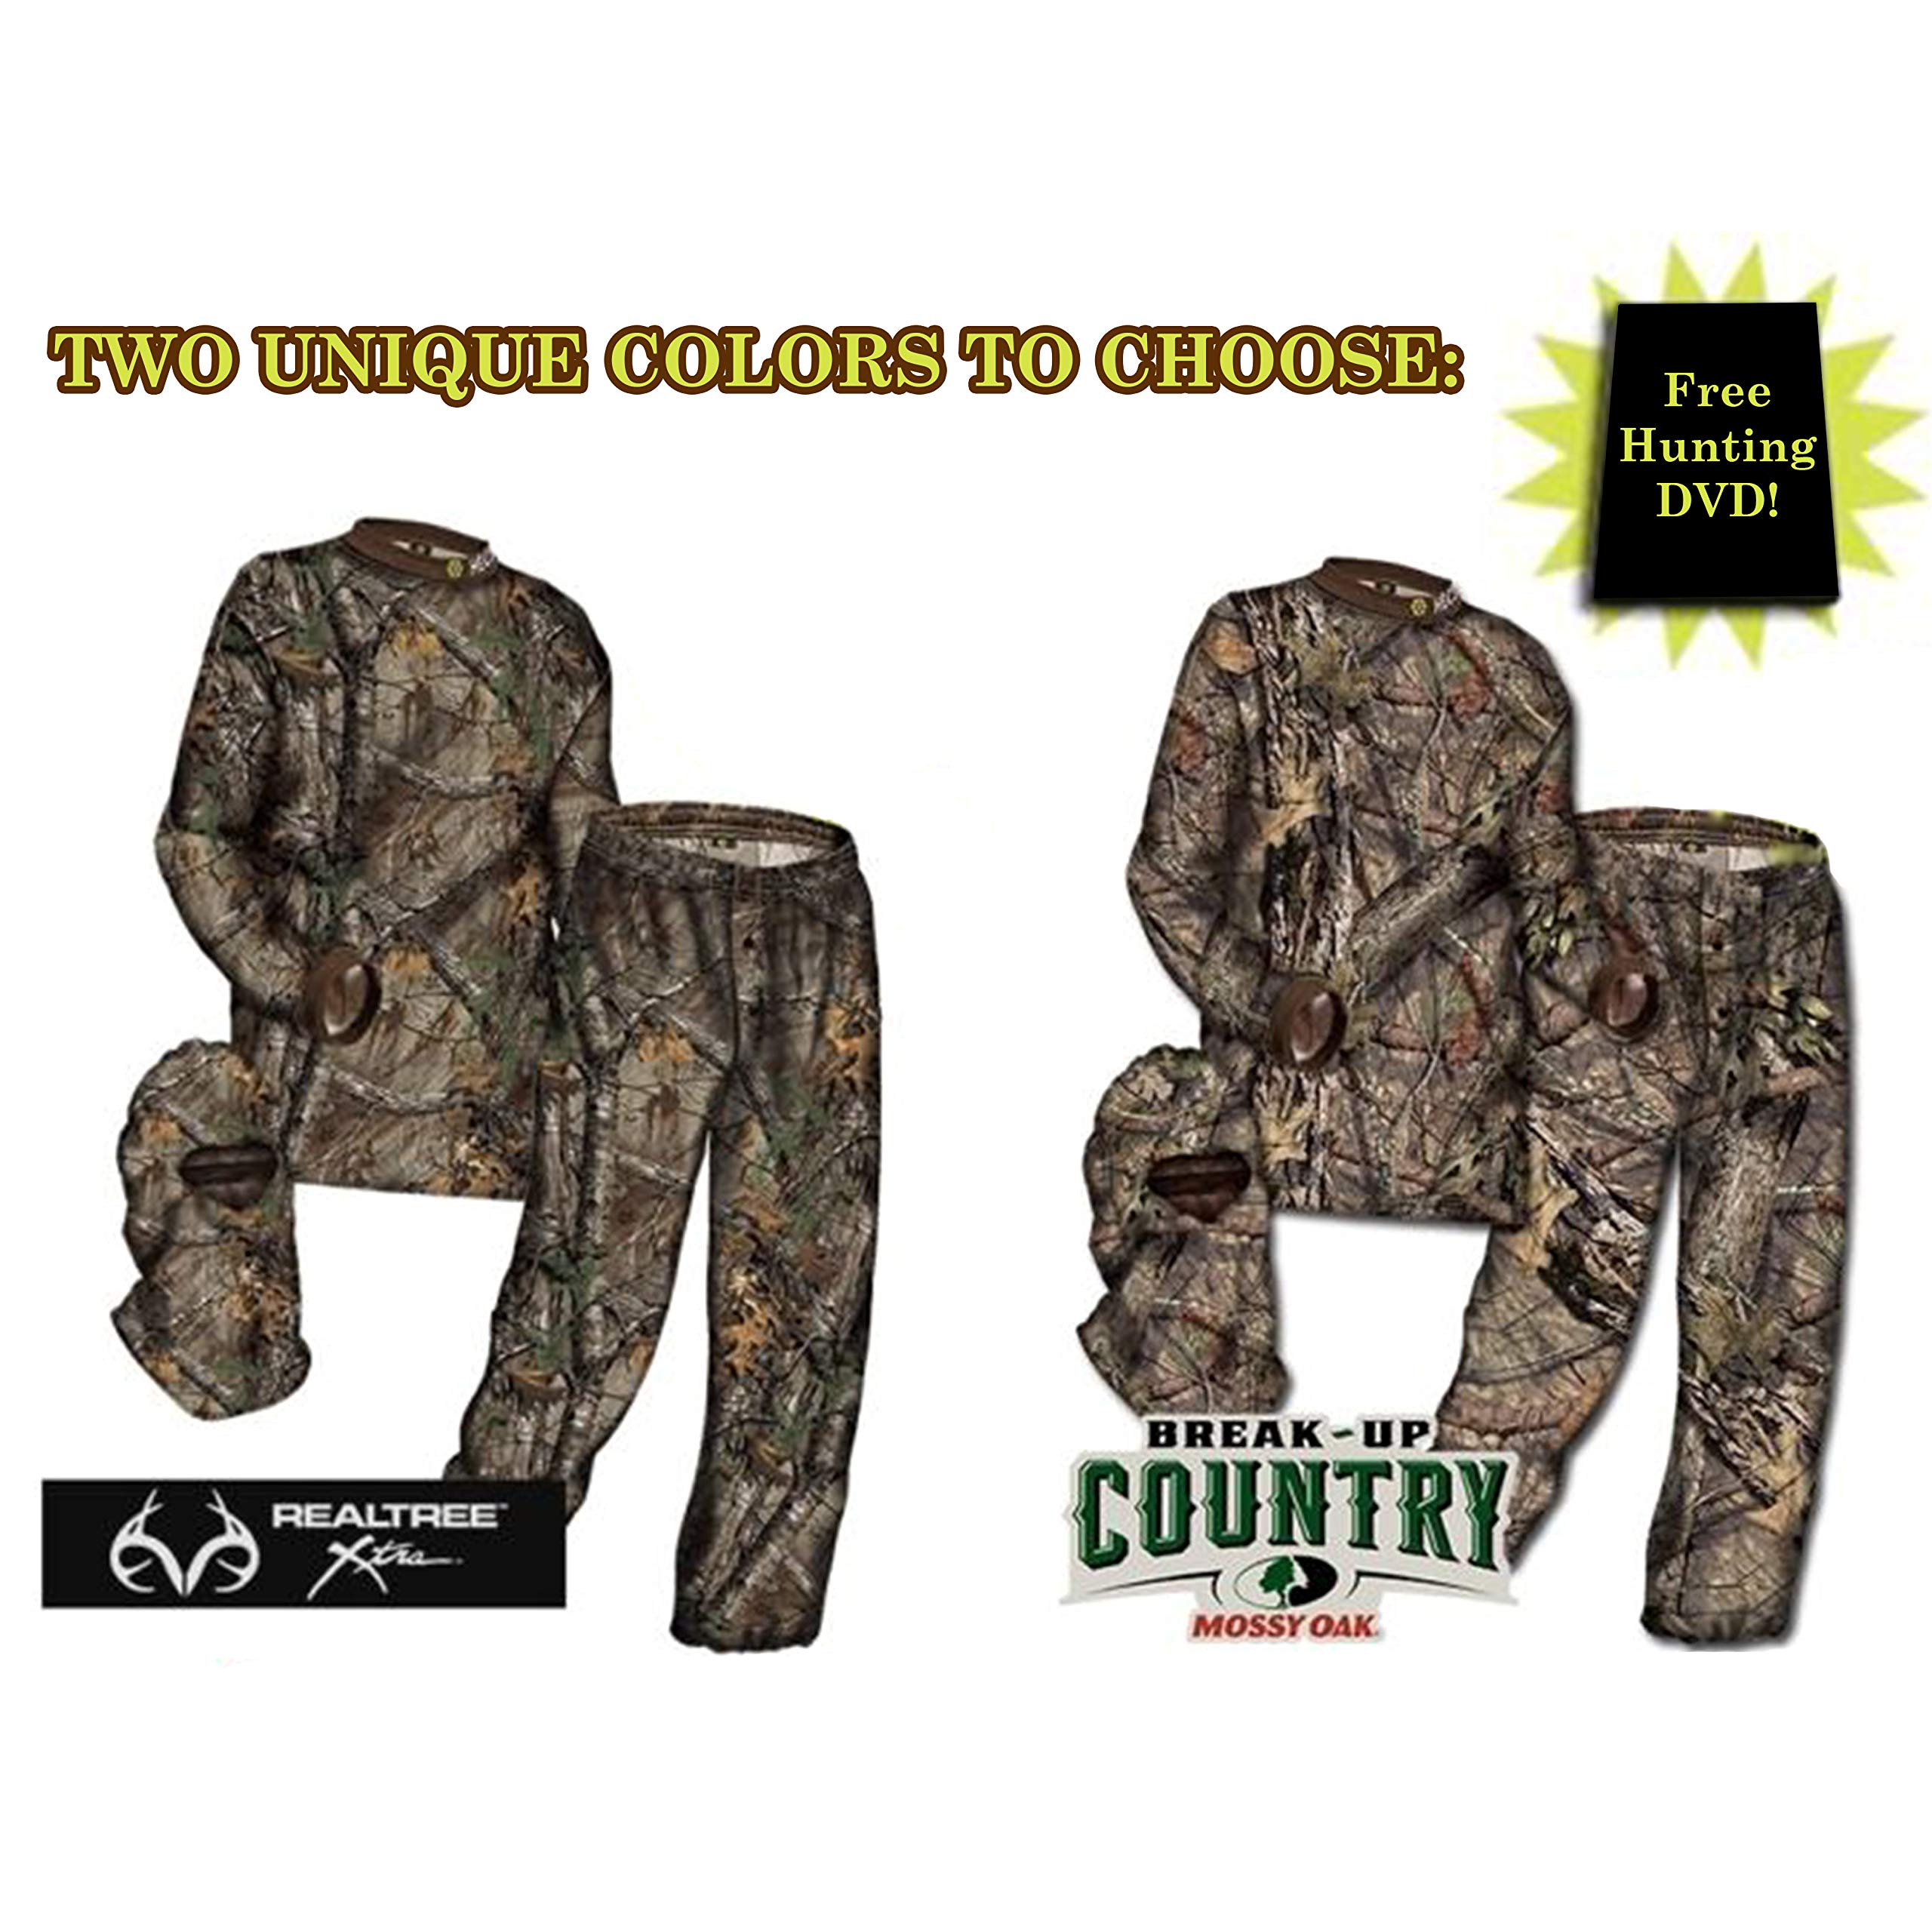 HECS Suit Deer Hunting Clothing with Human Energy Concealment Technology - Camo 3 Piece Shirt, Pants, Headcover - Lightweight Breathable in Mossy Oak Country & Realtree Xtra | Realtree, X-Large